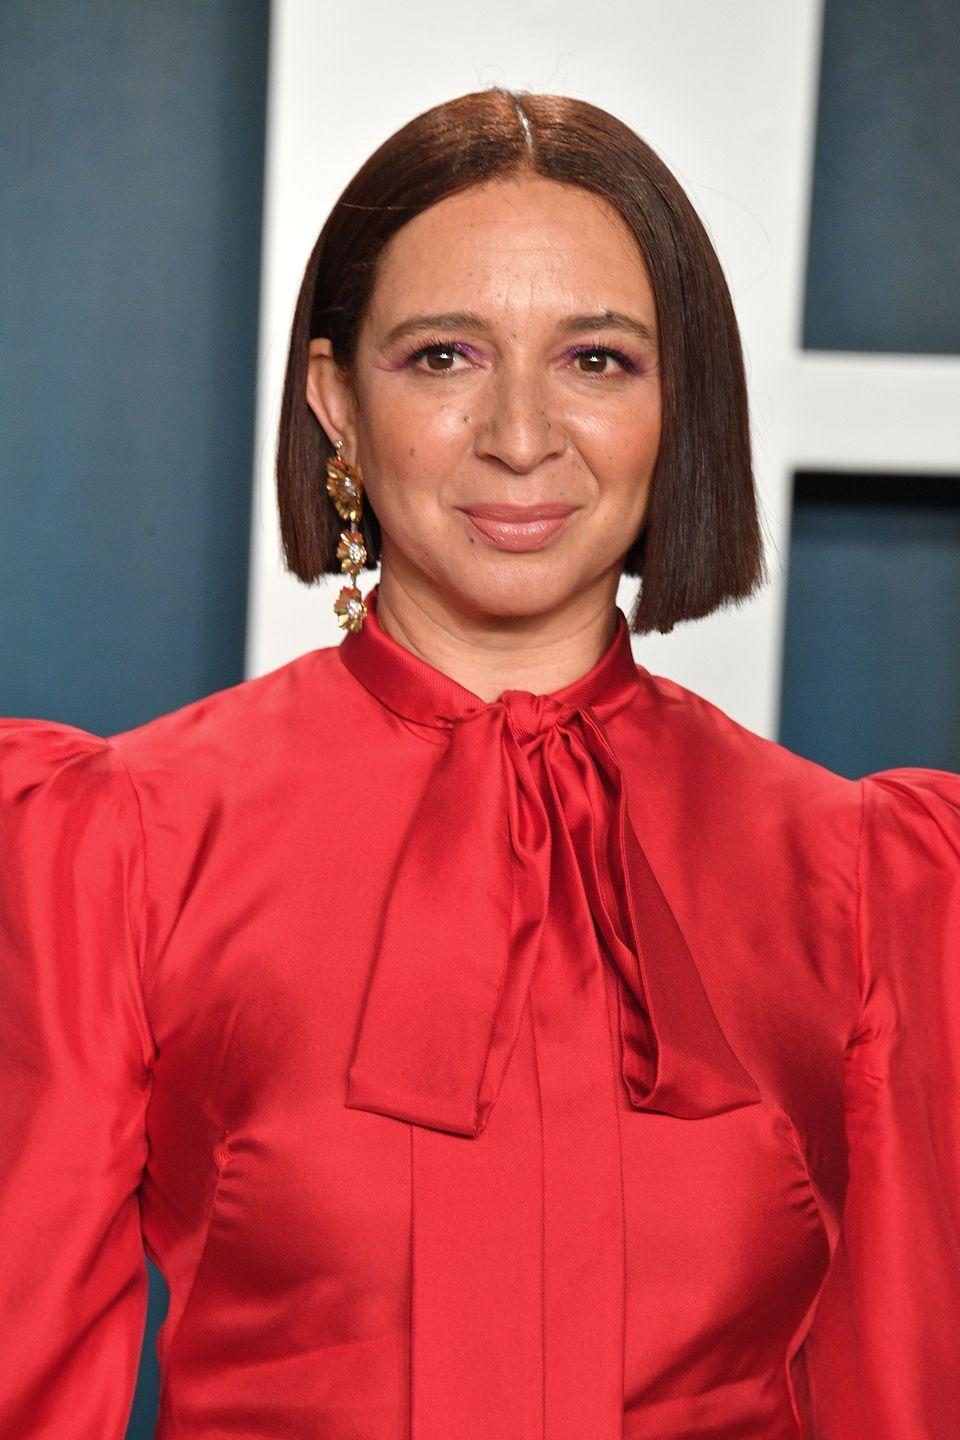 "<p>This just-barely-auburn look on <strong>Maya Rudolph</strong> shows that sleek and simple bobs need only a hint of warmth to stand out this fall.</p><p><strong>RELATED:</strong> <a href=""https://www.goodhousekeeping.com/beauty/hair/g1813/celebrity-hairstyles-bobs/"" rel=""nofollow noopener"" target=""_blank"" data-ylk=""slk:55+ Polished and Pretty Bobs"" class=""link rapid-noclick-resp"">55+ Polished and Pretty Bobs</a></p>"